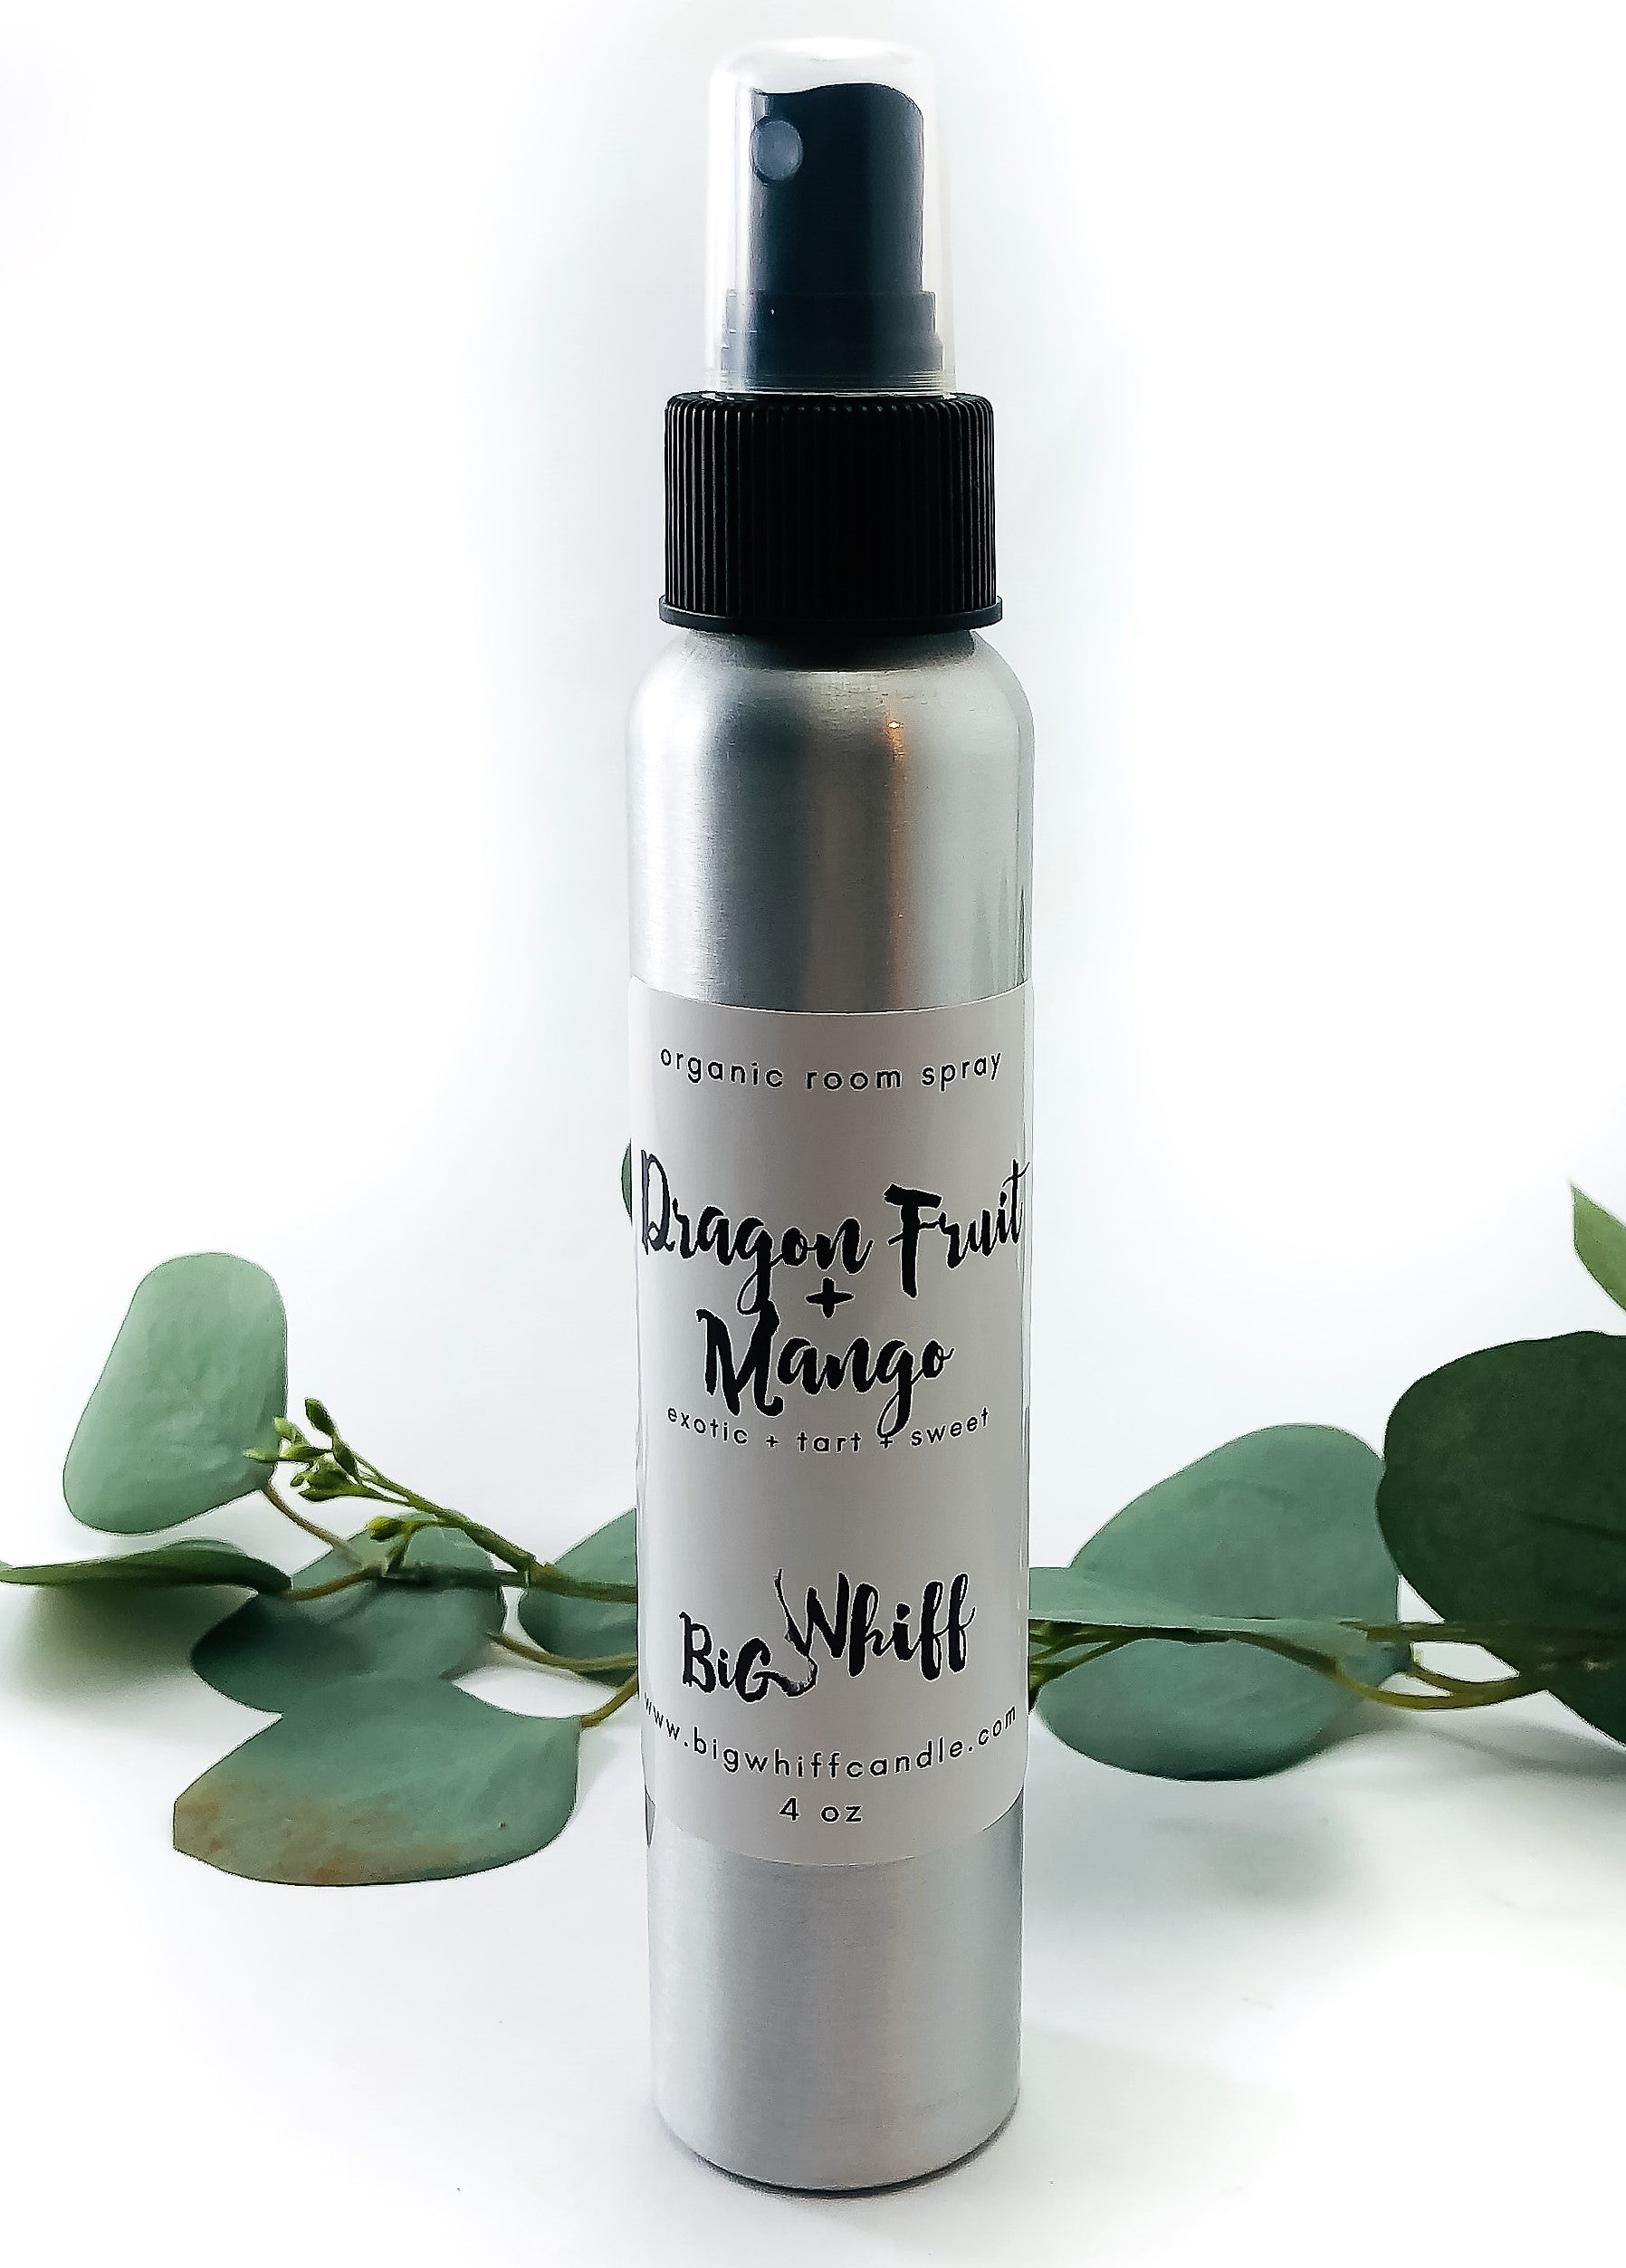 Organic Room Spray - Dragon Fruit + Mango - Deodorizer, Fabric Spray, Heavy Duty Air Freshener, Organic Vegan Natural, Botanical Collection - Big Whiff Candle Co.